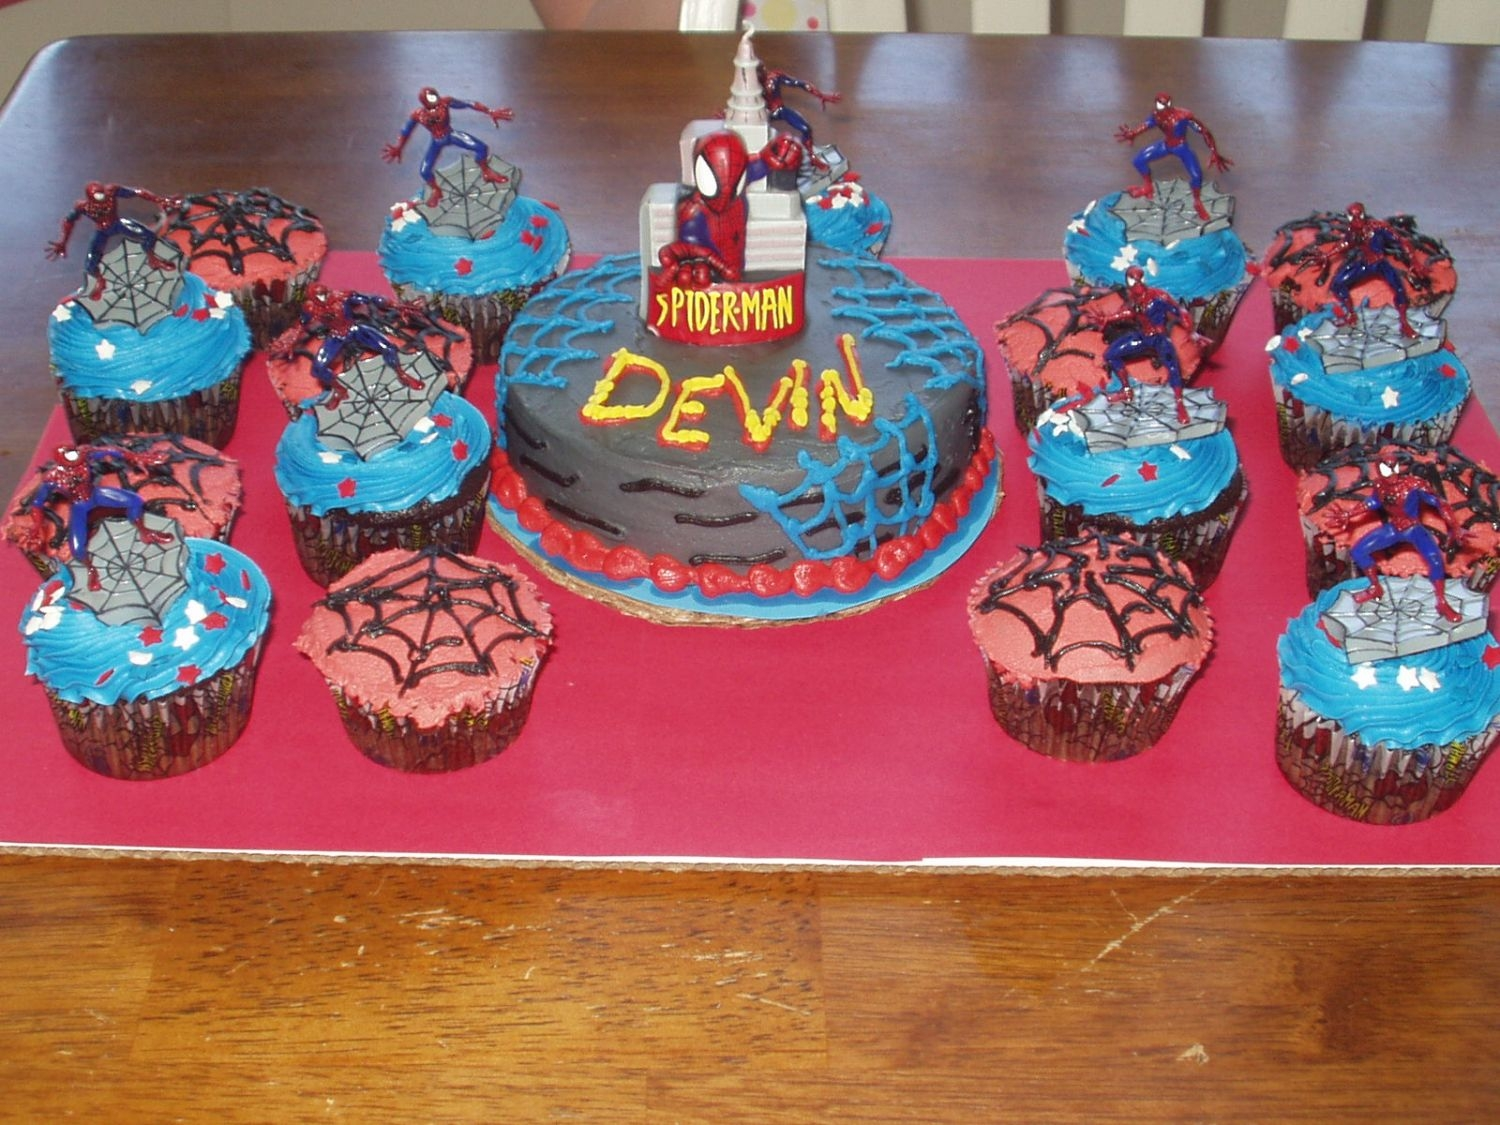 "Spiderman 6"" round with candlecupcakes"